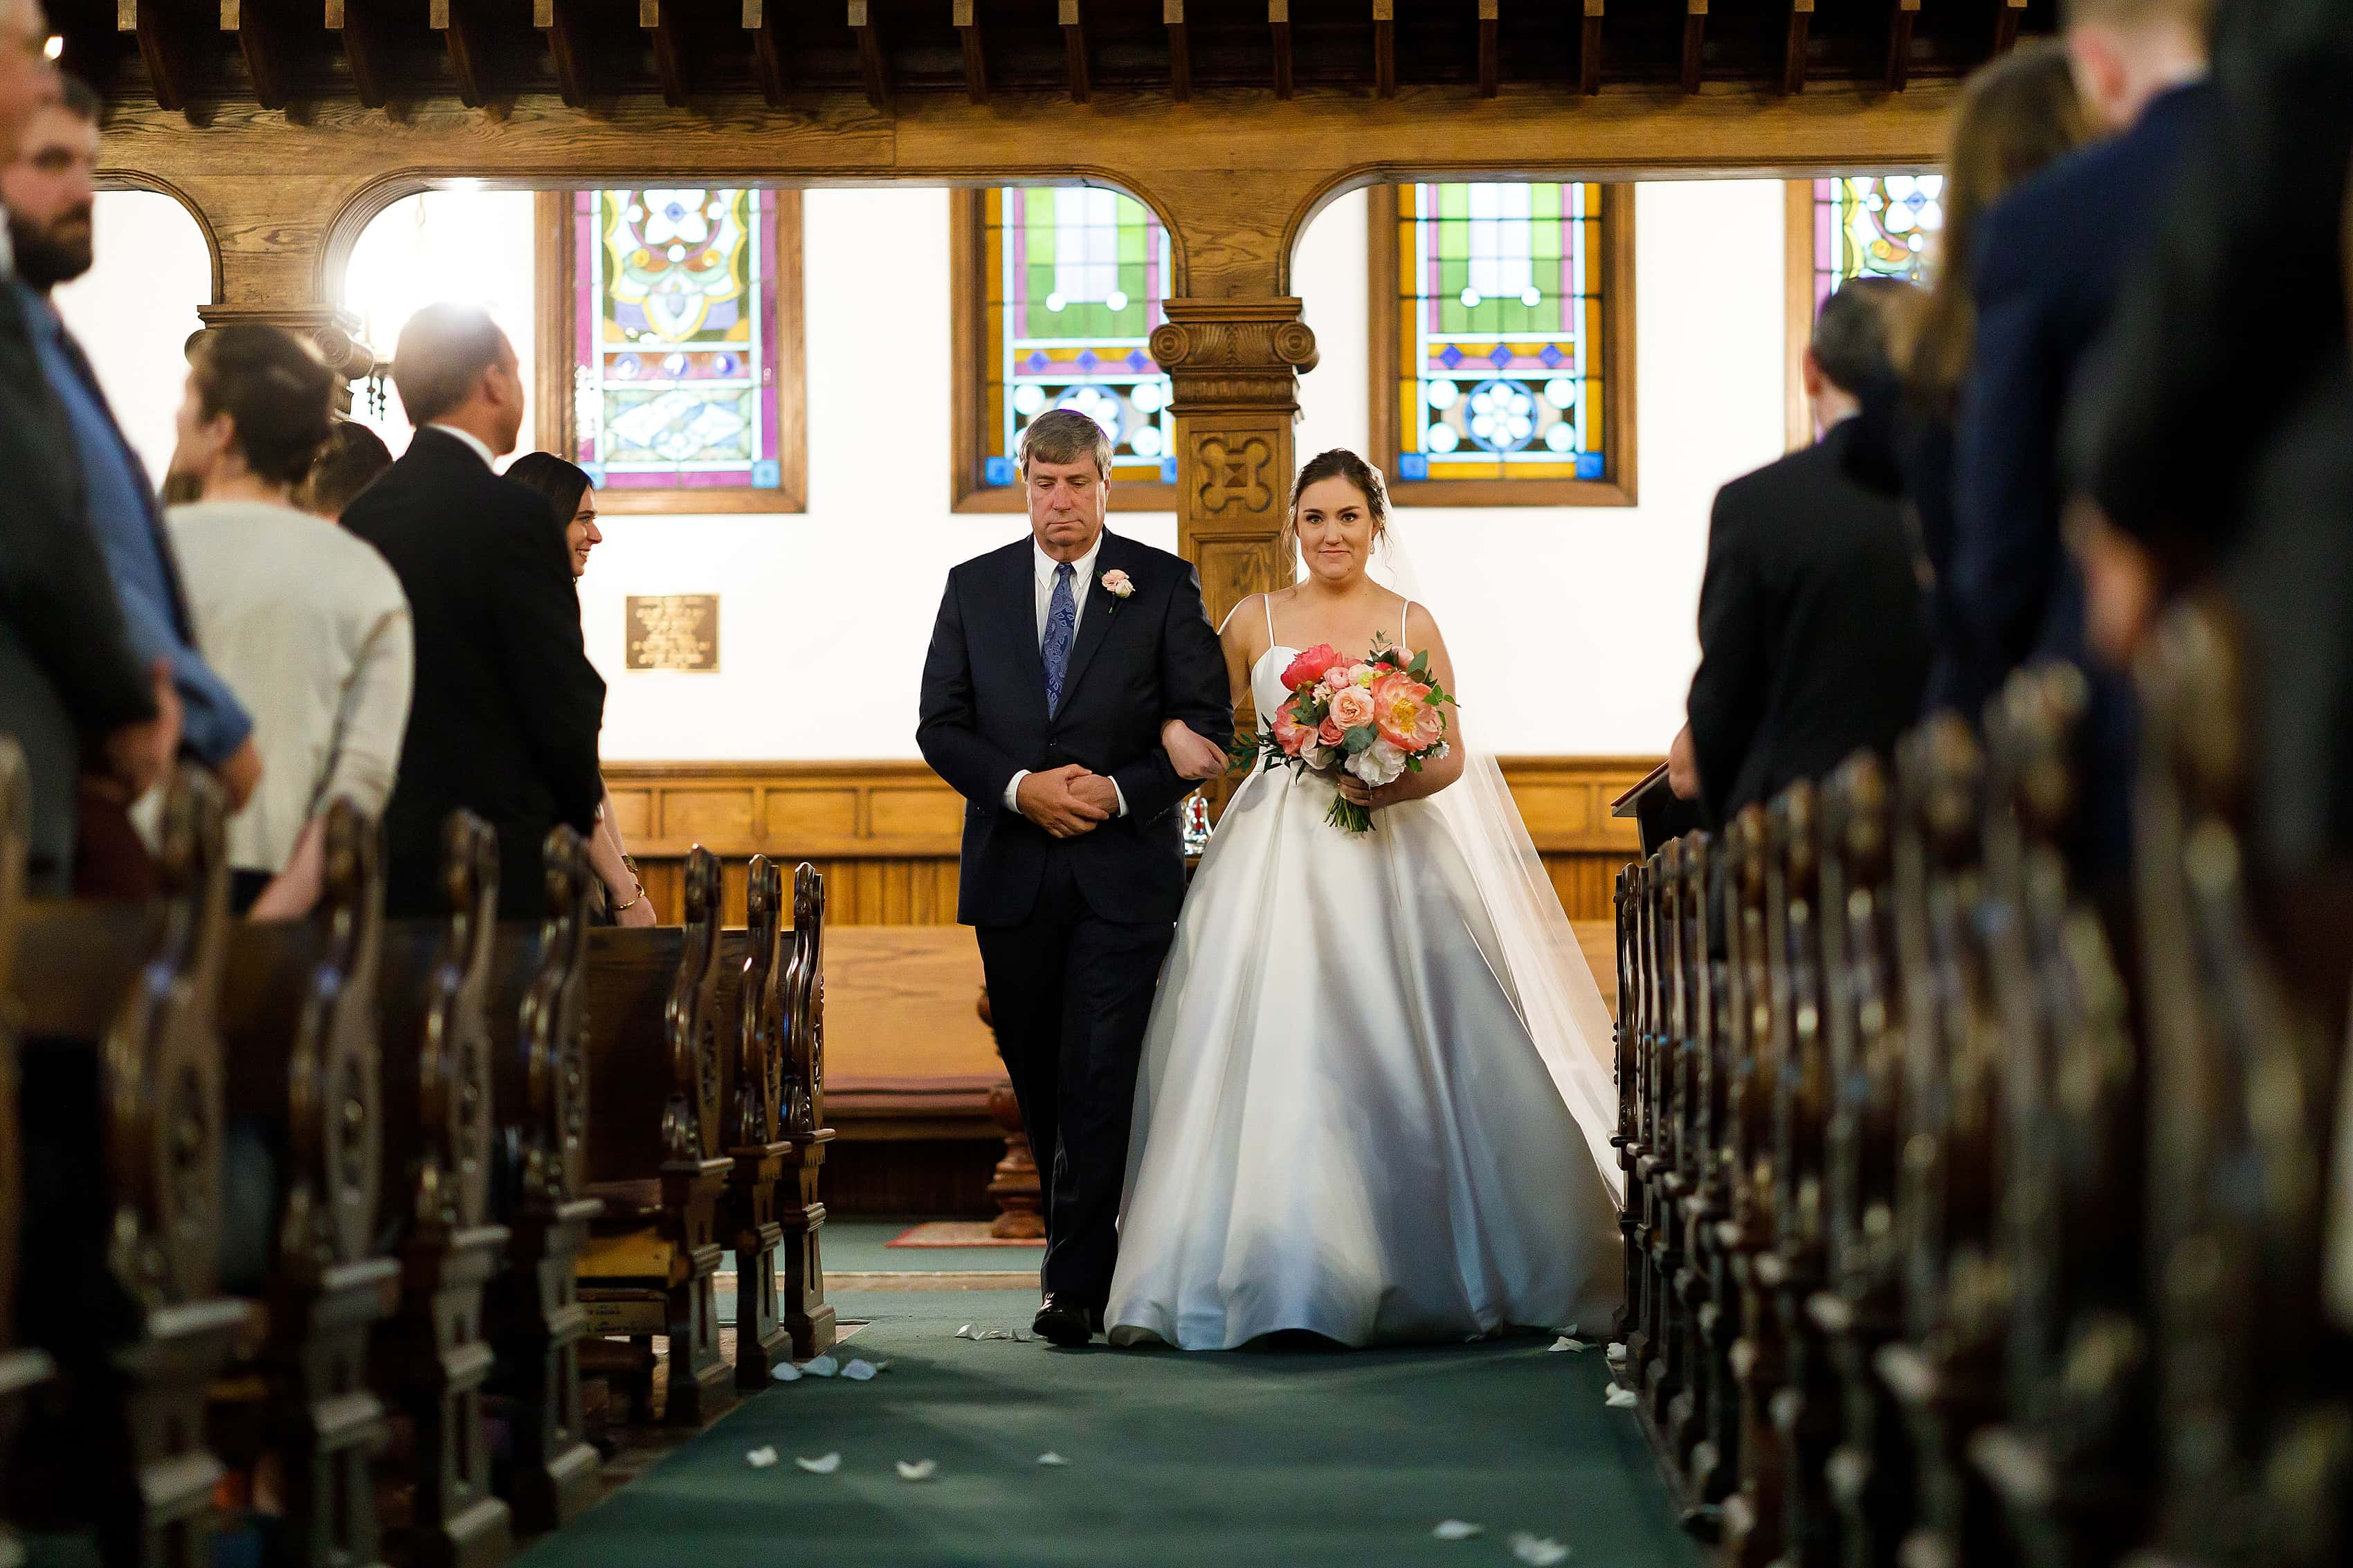 bride and father walk down the aisle during wedding ceremony at Church of our Savior